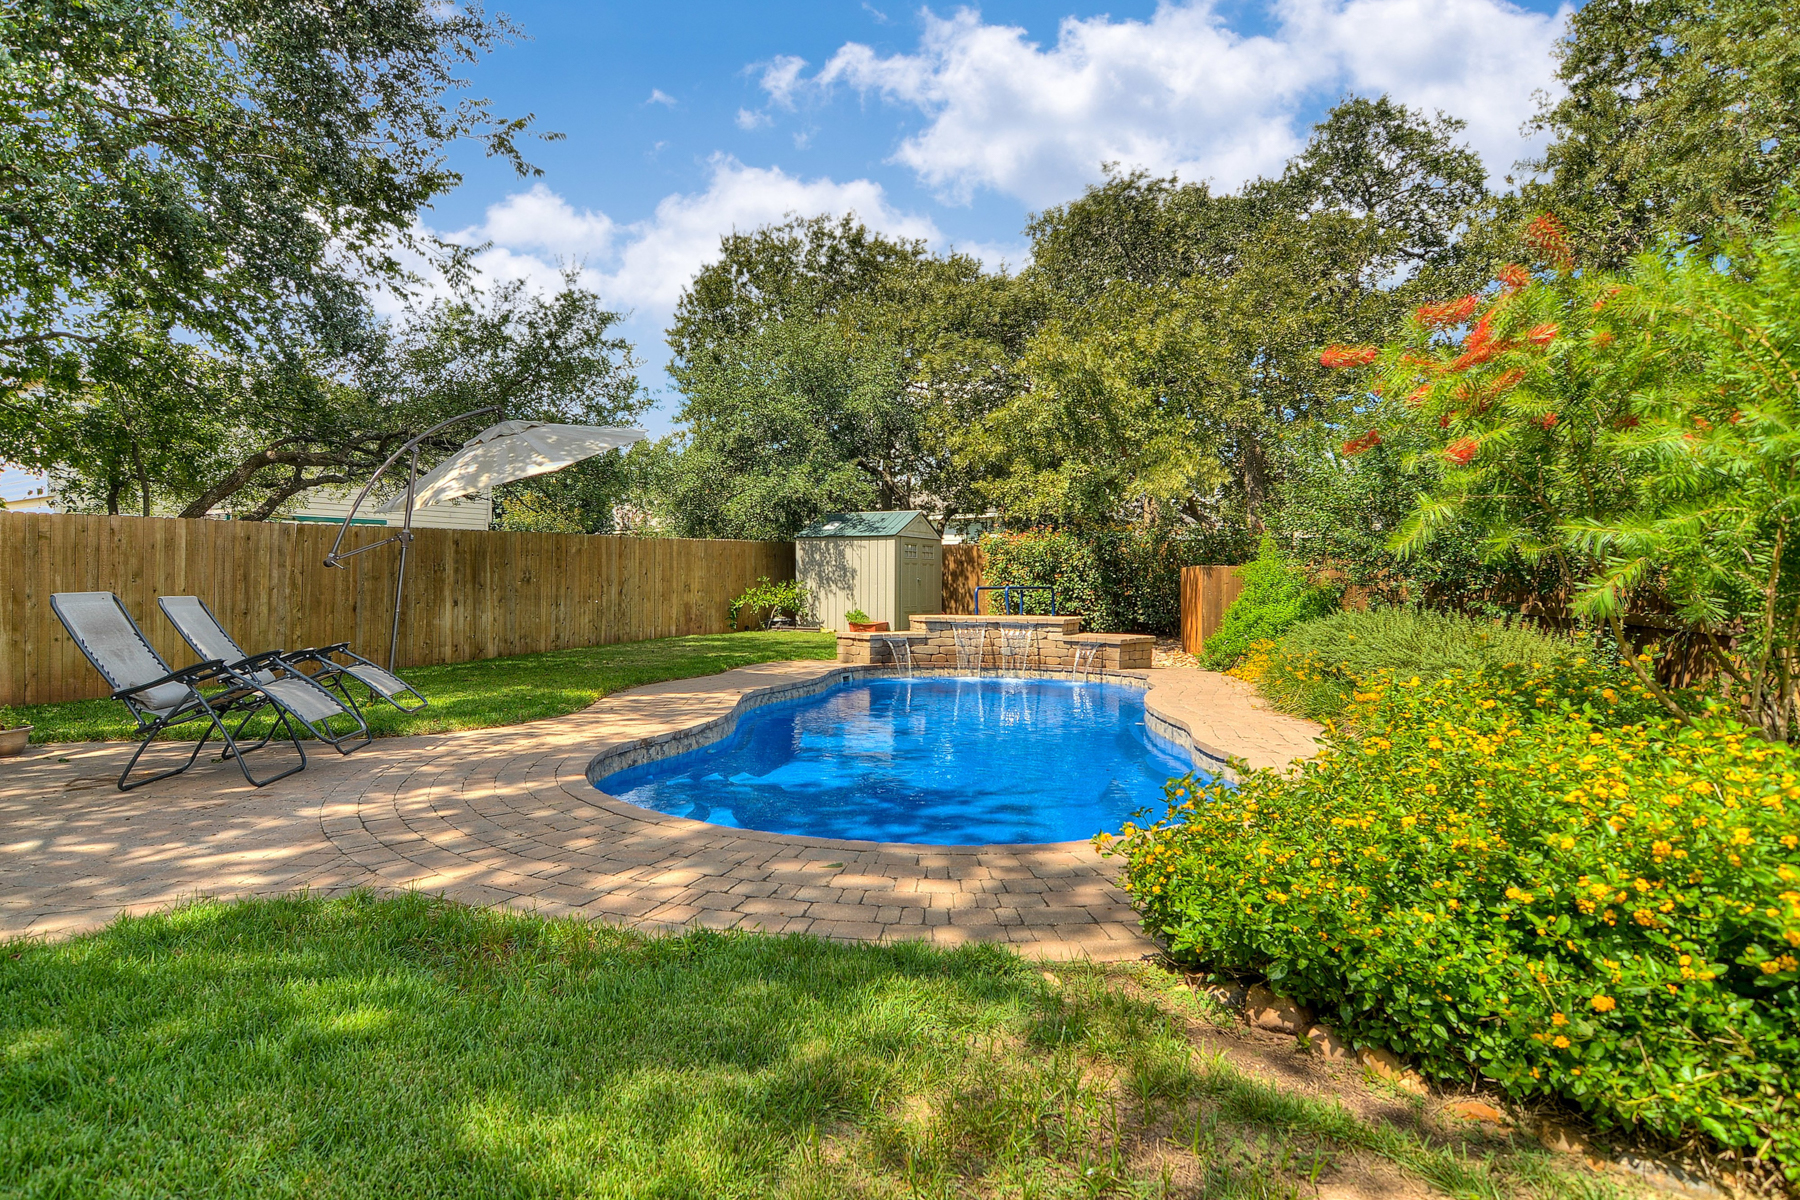 Additional photo for property listing at Great Find in Boerne Heights 134 Jordan Pl Boerne, Texas 78006 United States